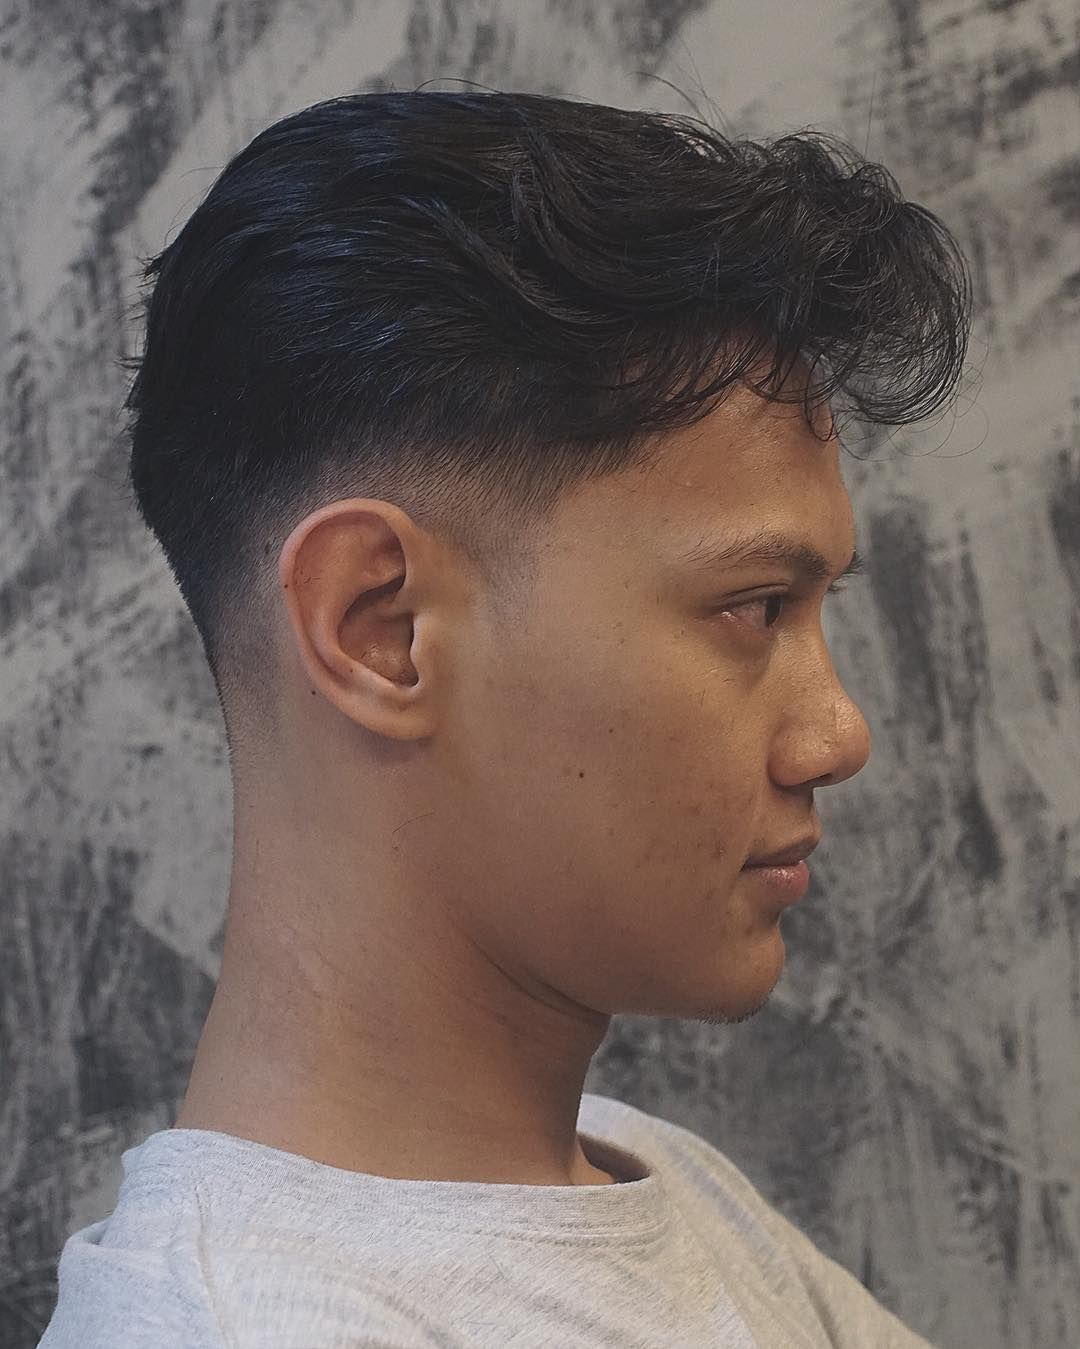 Wavy Hairstyles For Asian Men Asian Men Hairstyle Wavy Hair Men Medium Hair Styles